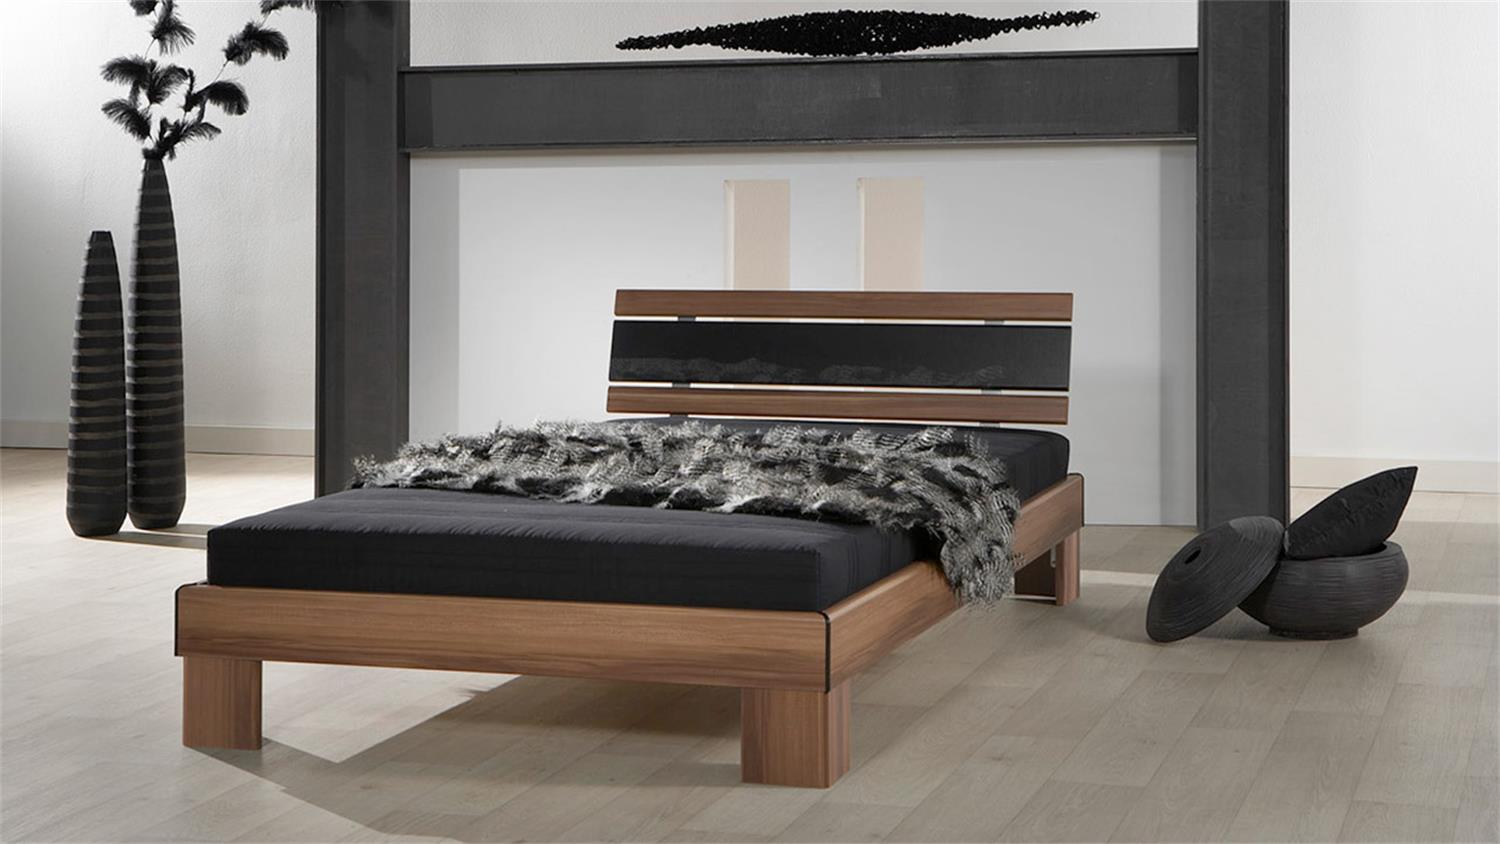 futonbett rhone bett in nussbaum schwarz mit rollrost und matratze 120. Black Bedroom Furniture Sets. Home Design Ideas